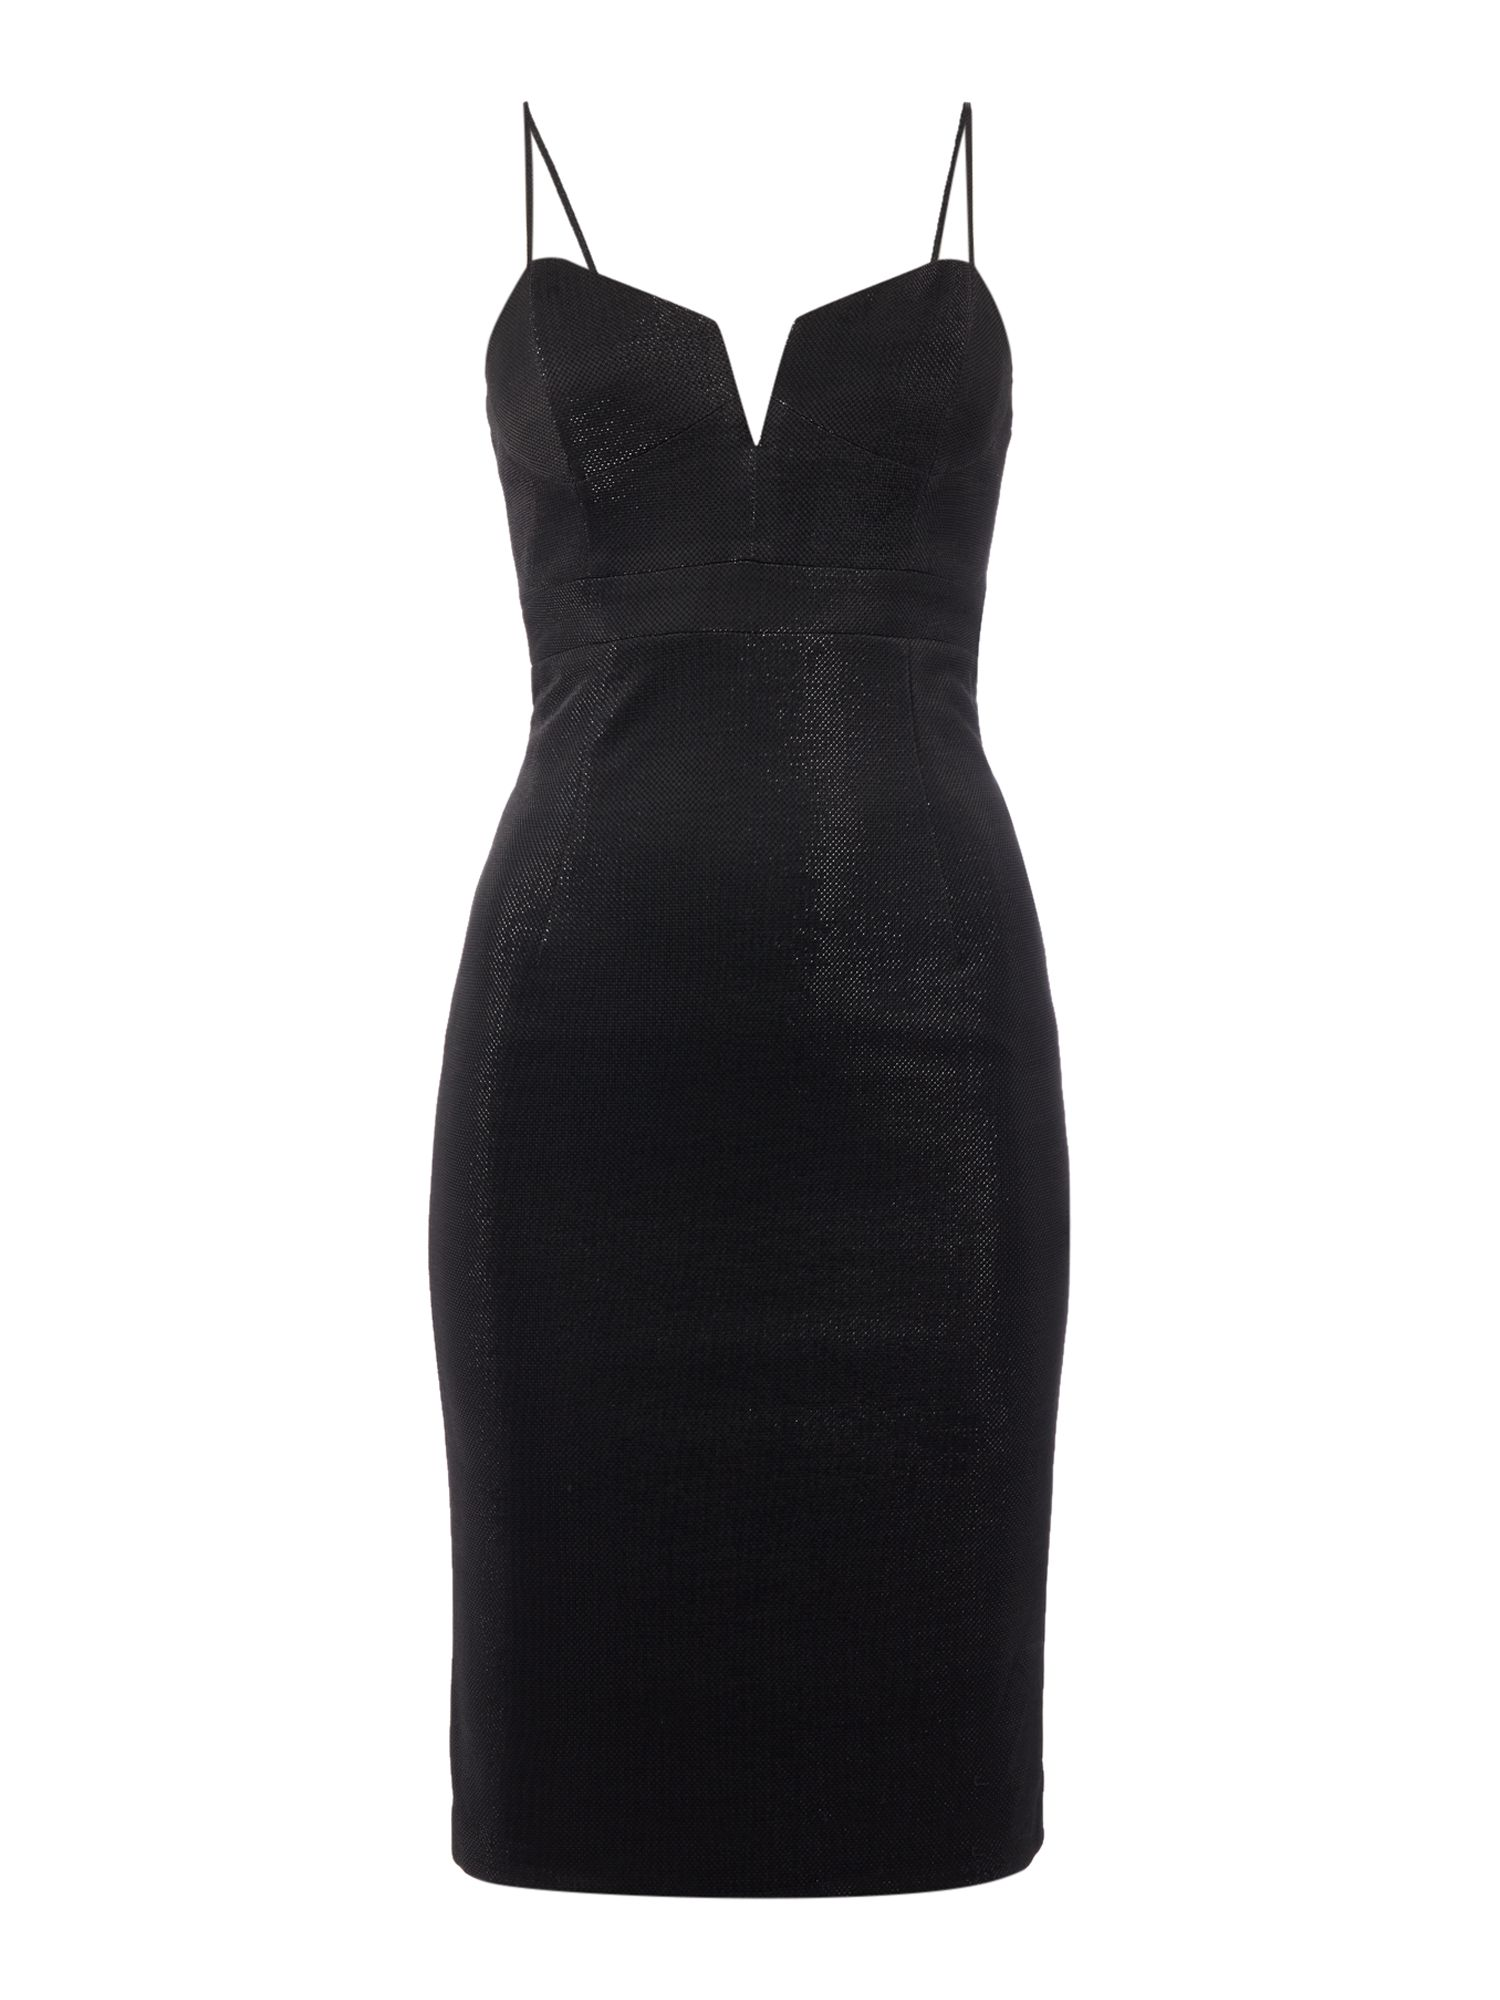 Bardot alexandra sleeveless dress, Black